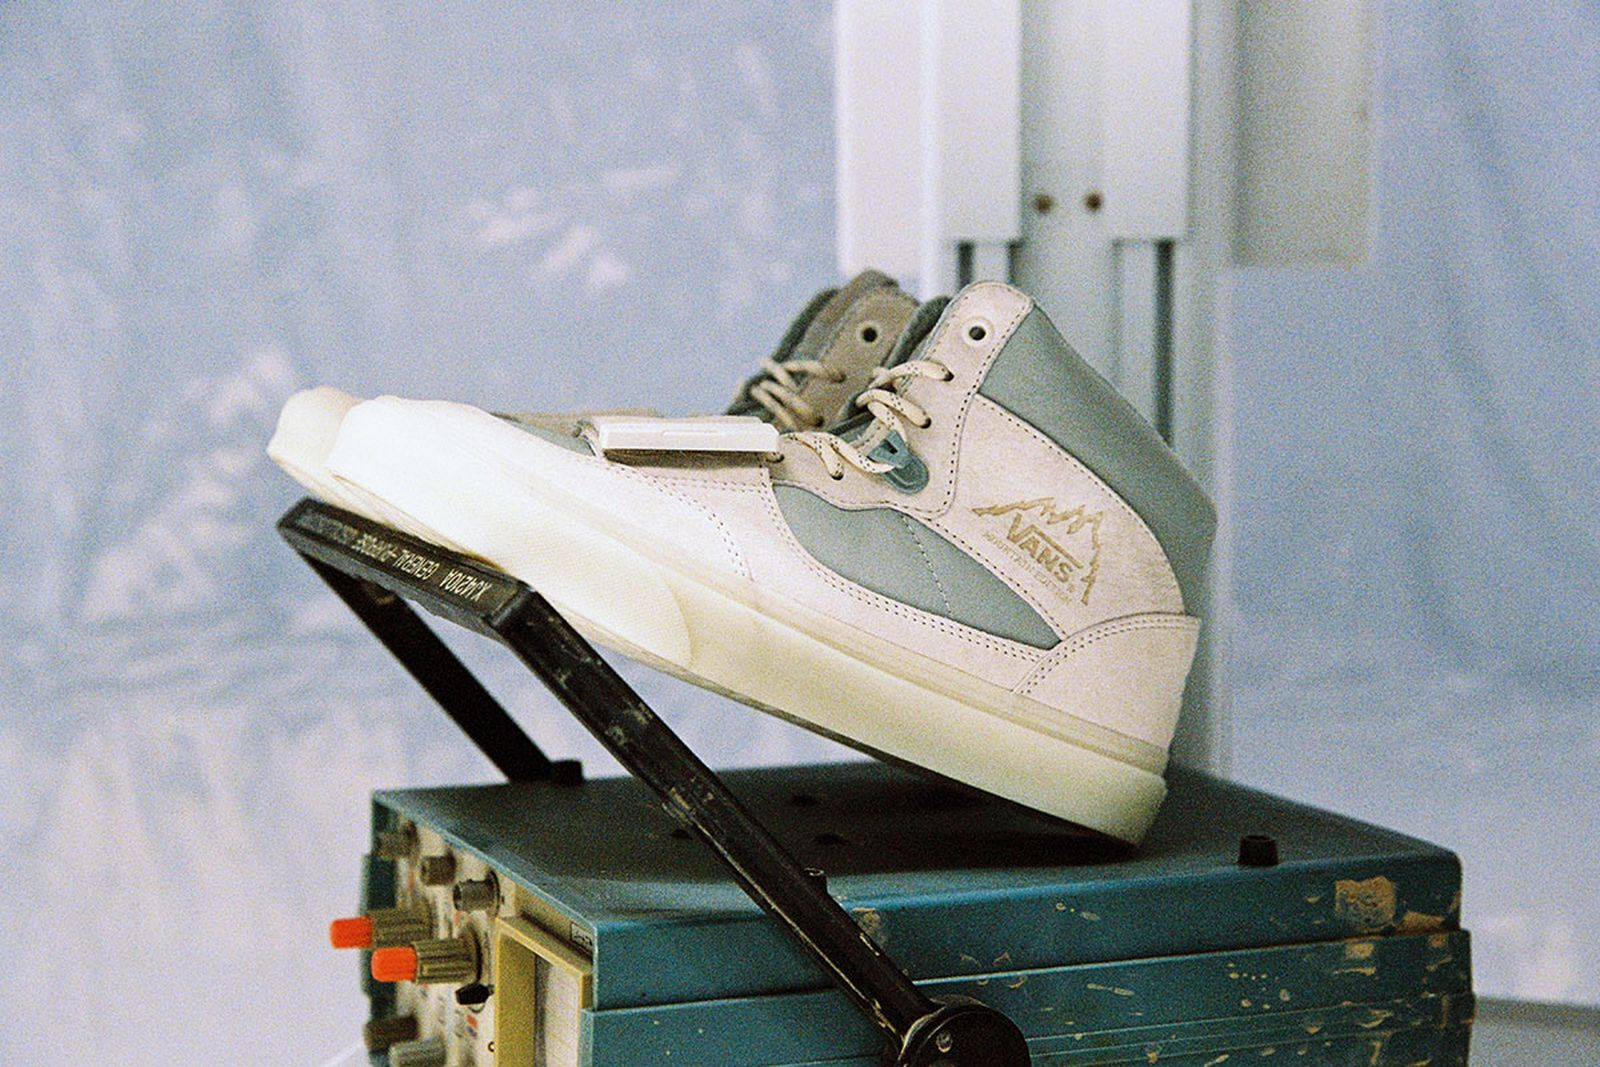 c2h4-vans-the-imagination-of-future-2-release-date-price-a-06